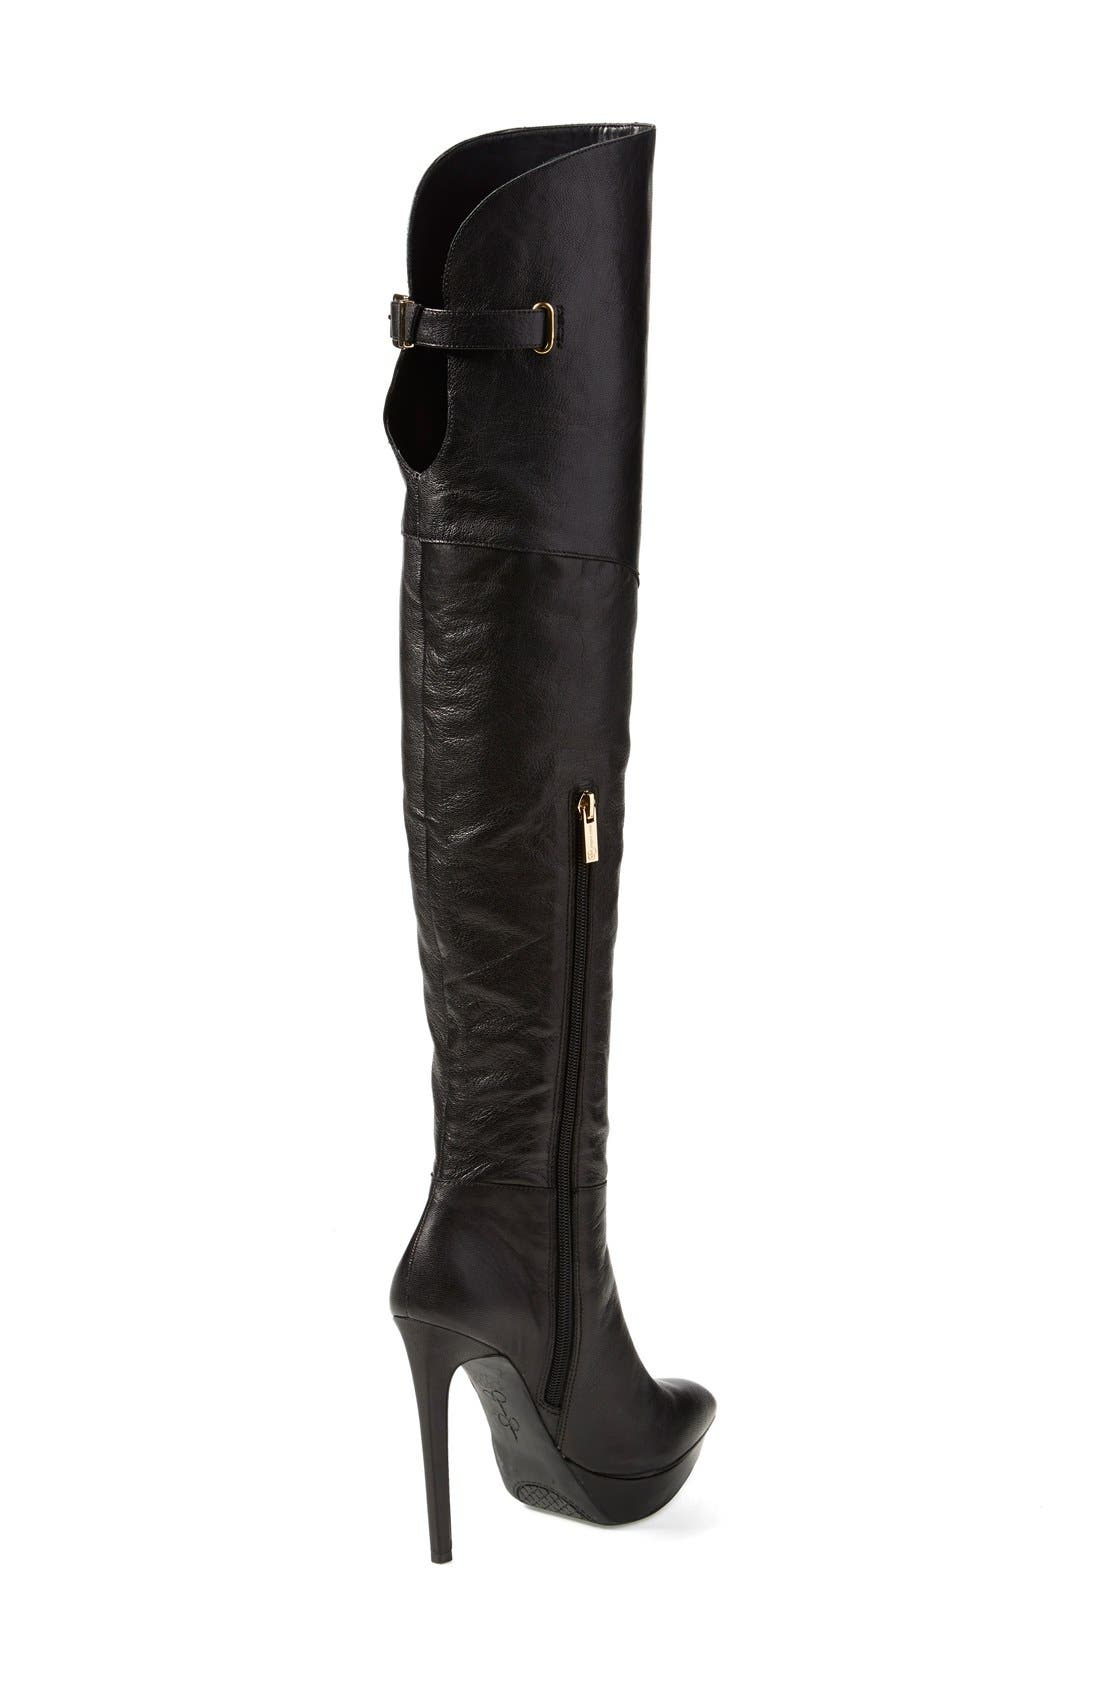 JESSICA SIMPSON, 'Valentia' Over the Knee Platform Boot, Alternate thumbnail 3, color, 001